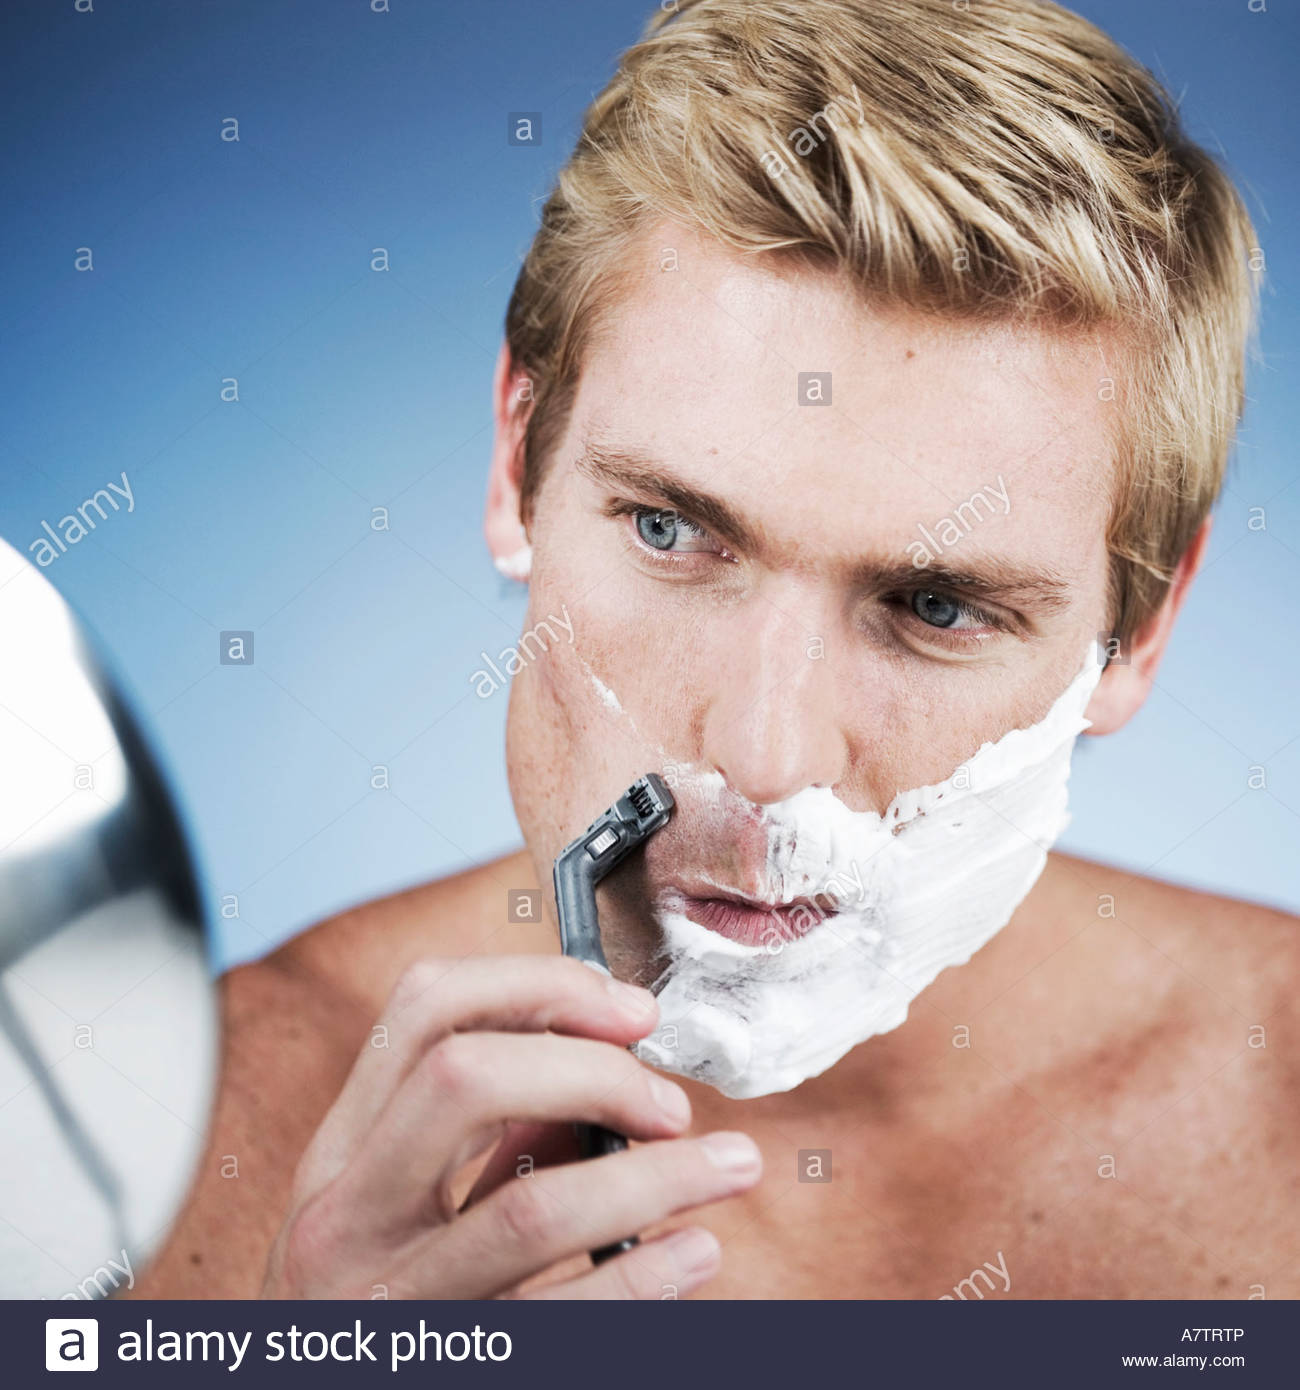 A young man shaving - Stock Image